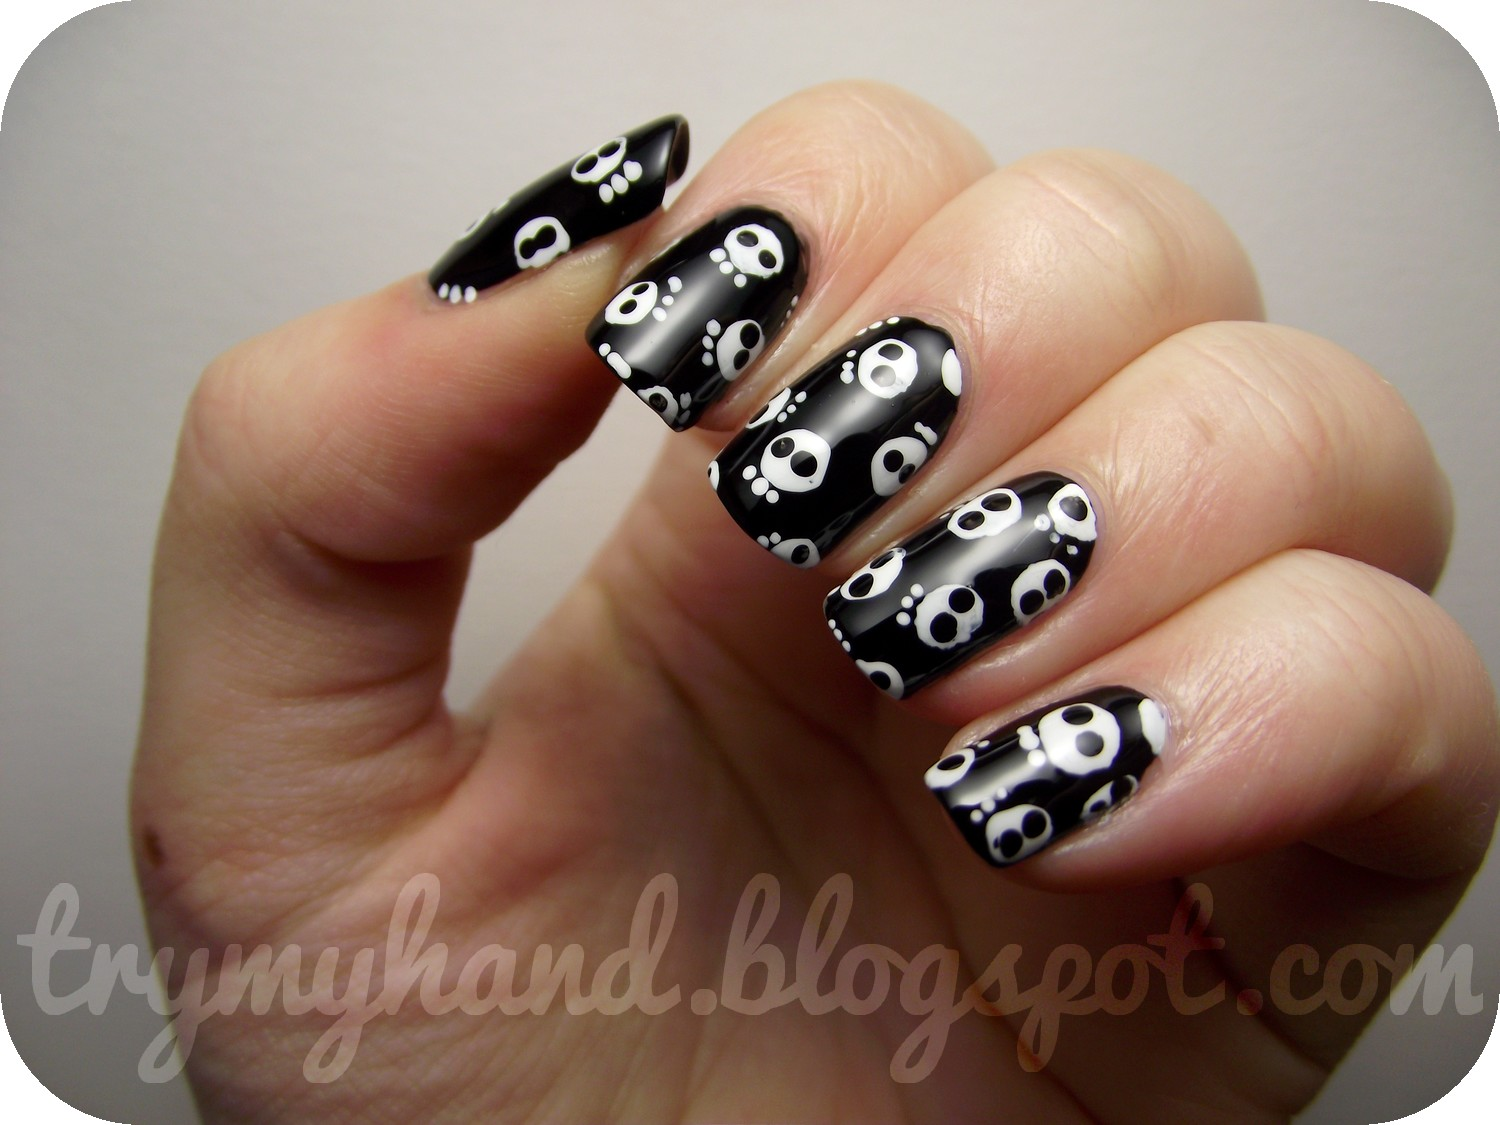 Try My Hand: Halloween Nails : Skull Print